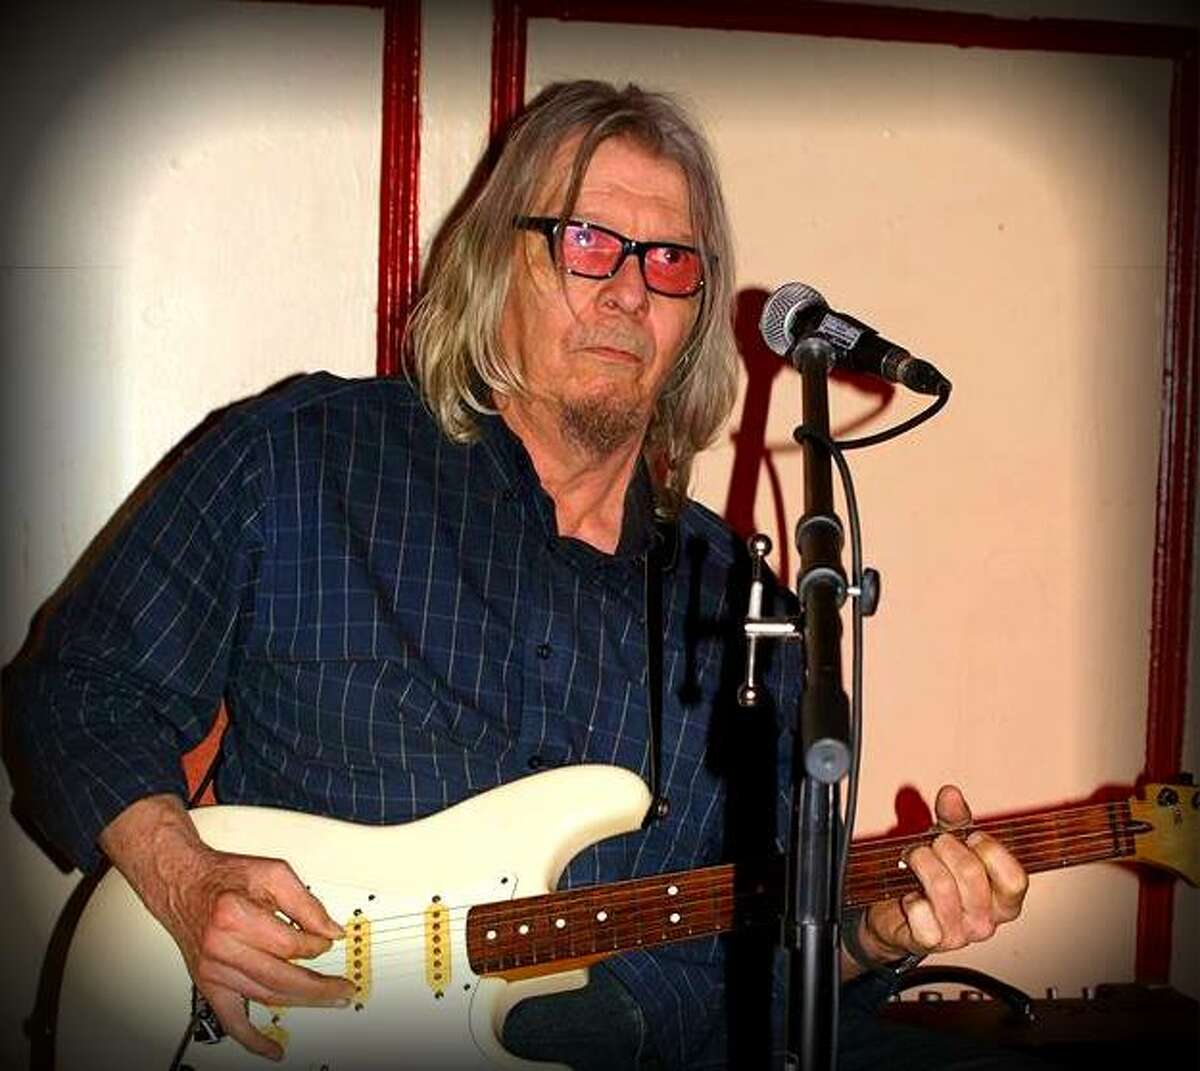 A recent photo of Buck Malen. (Photo from Facebook.) ORG XMIT: zZof3Ca97v1_Y3b-SiSv